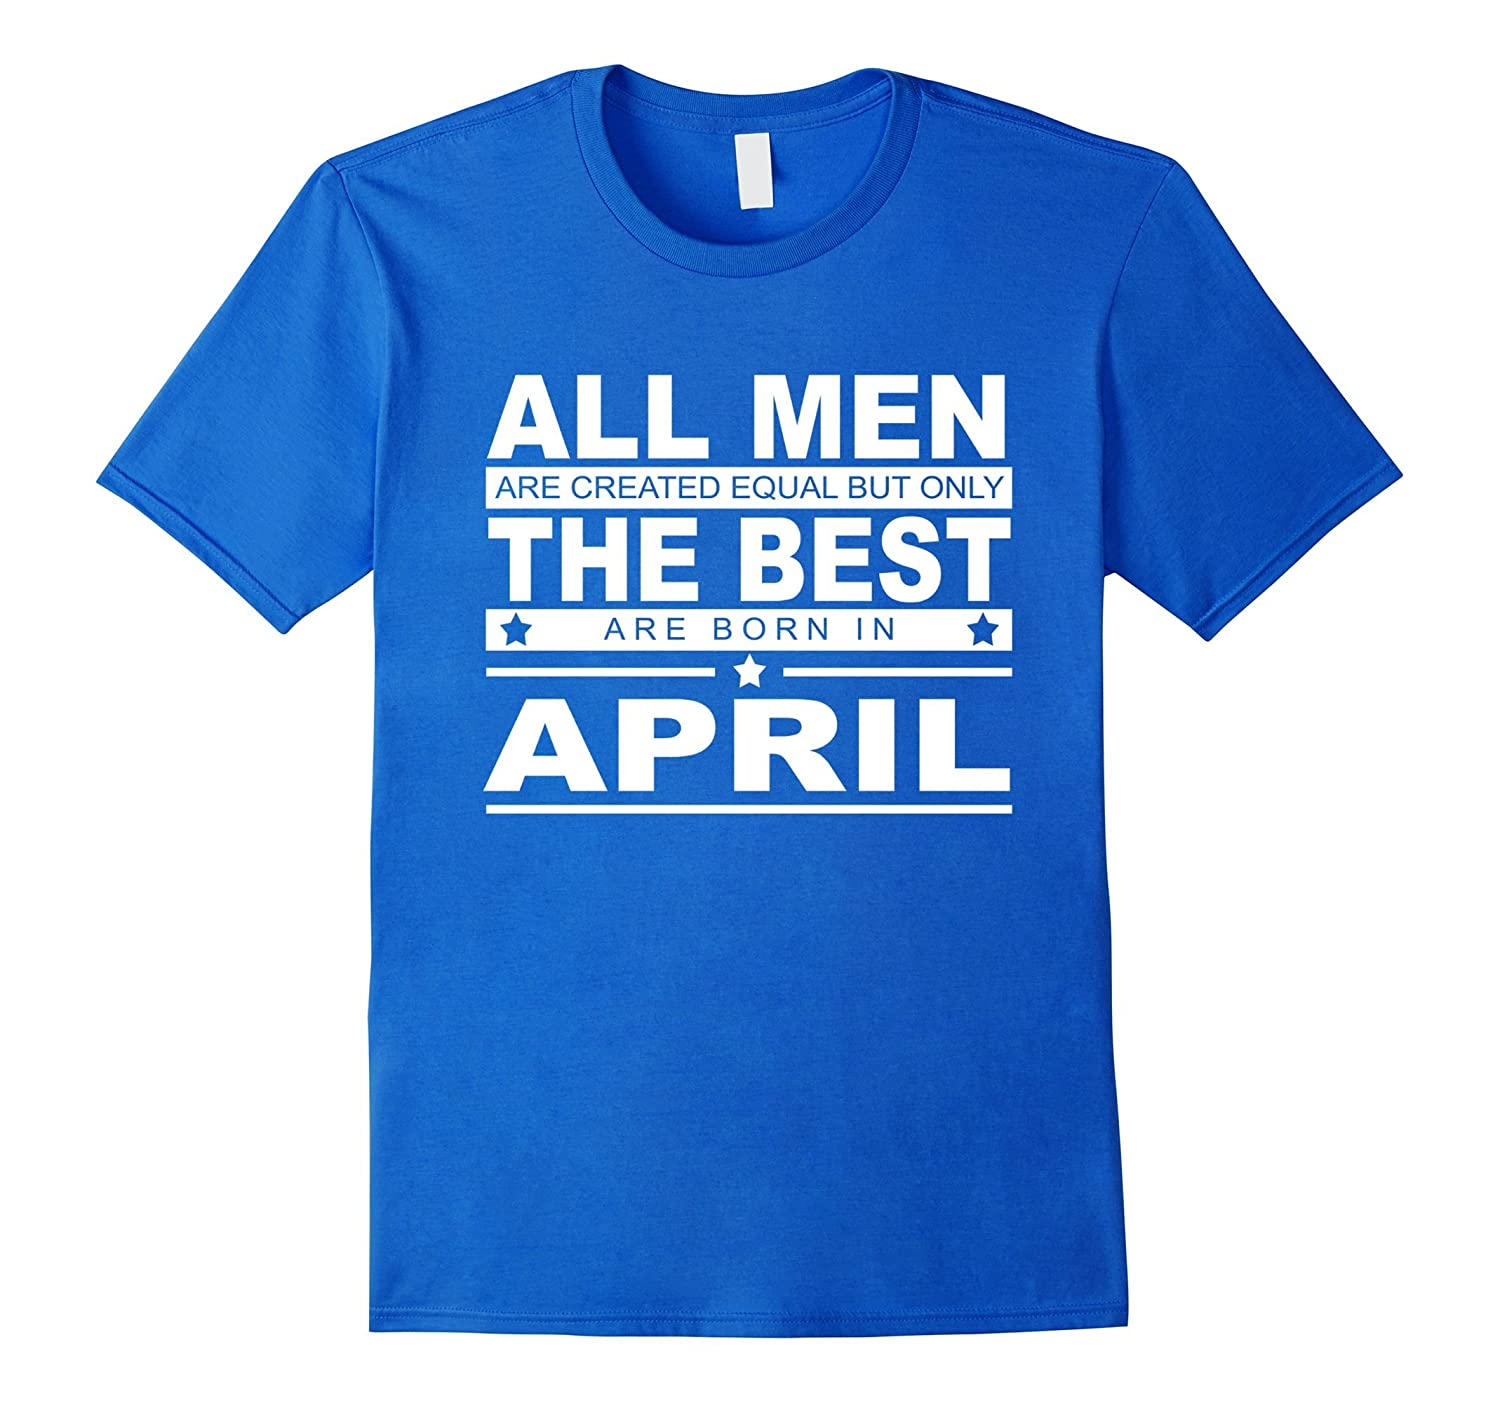 All Men Are Created Equal But Only Are Born In April T-shirt-FL